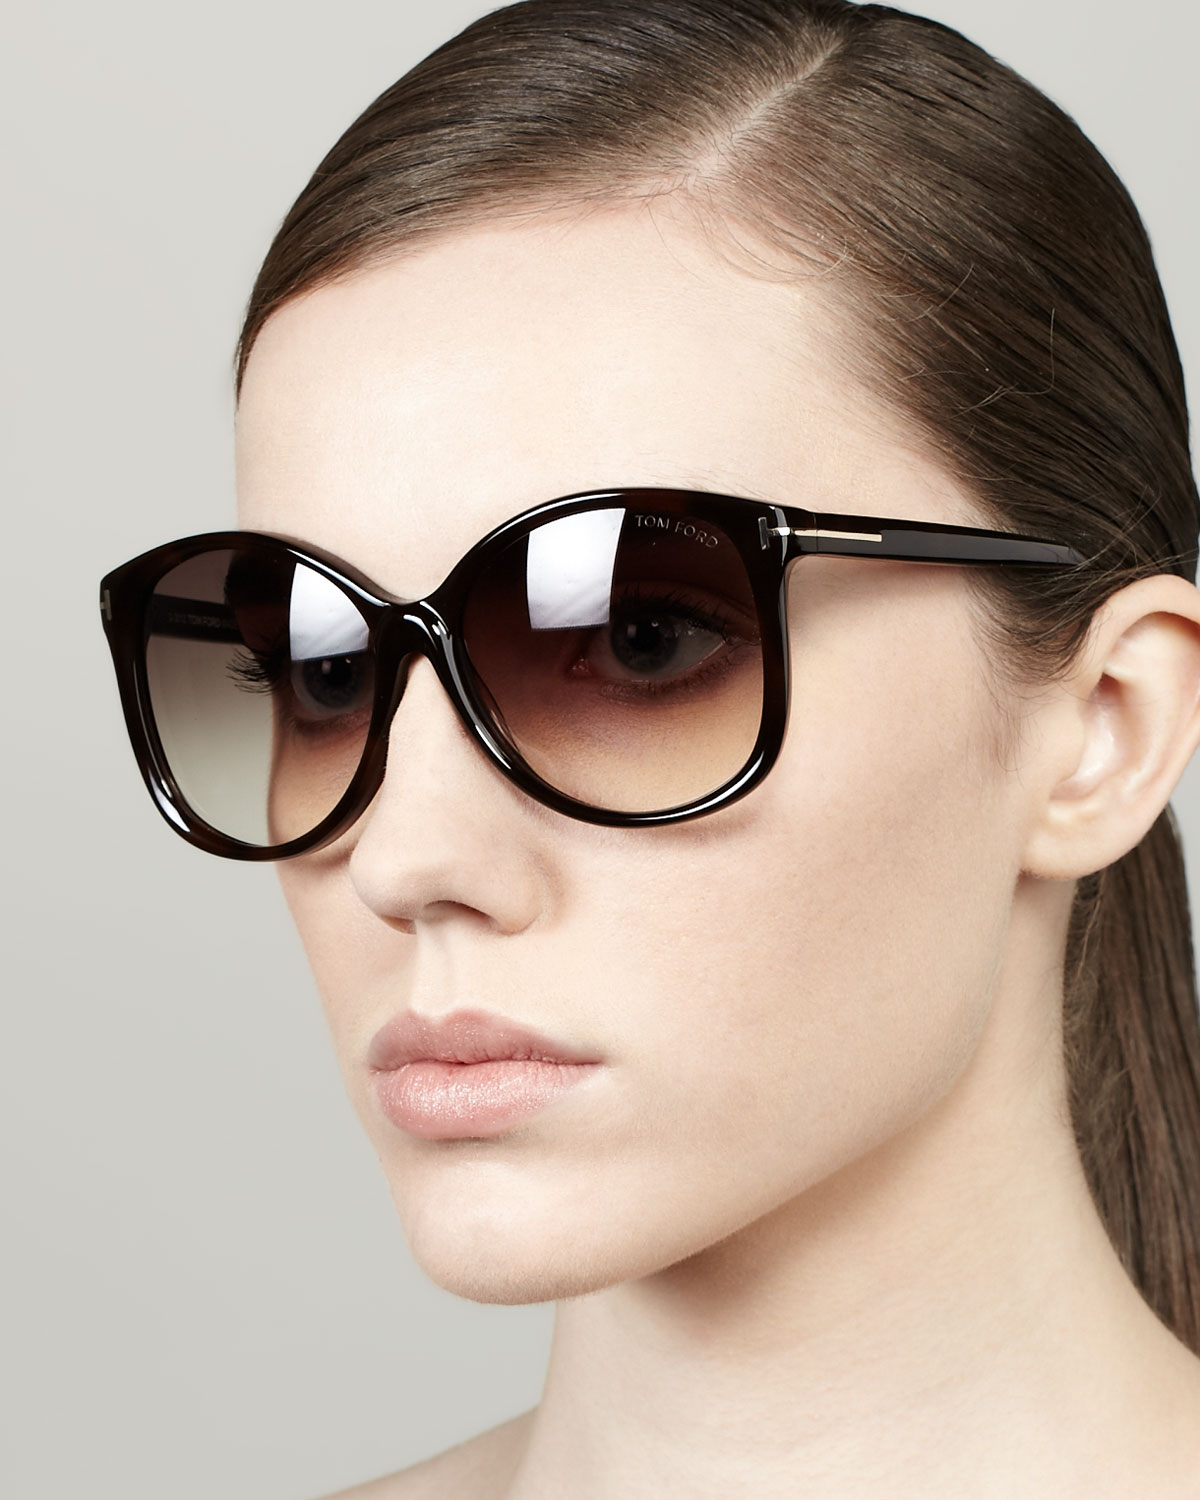 Lyst Tom Ford Carli Angled Round Sunglasses In Black